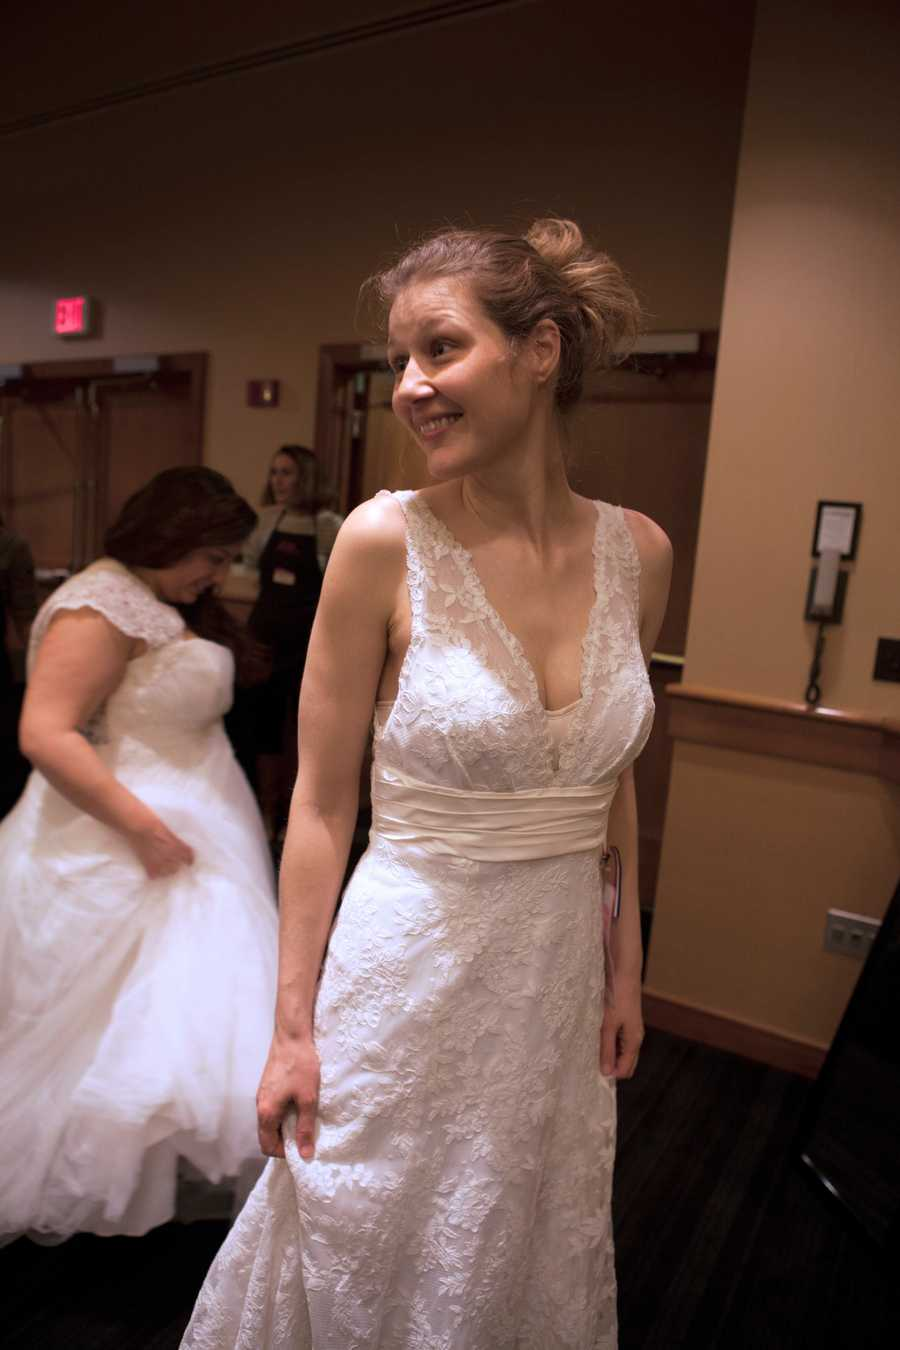 An unidentifiedbride asks a friend for advice when she tries on a gown.